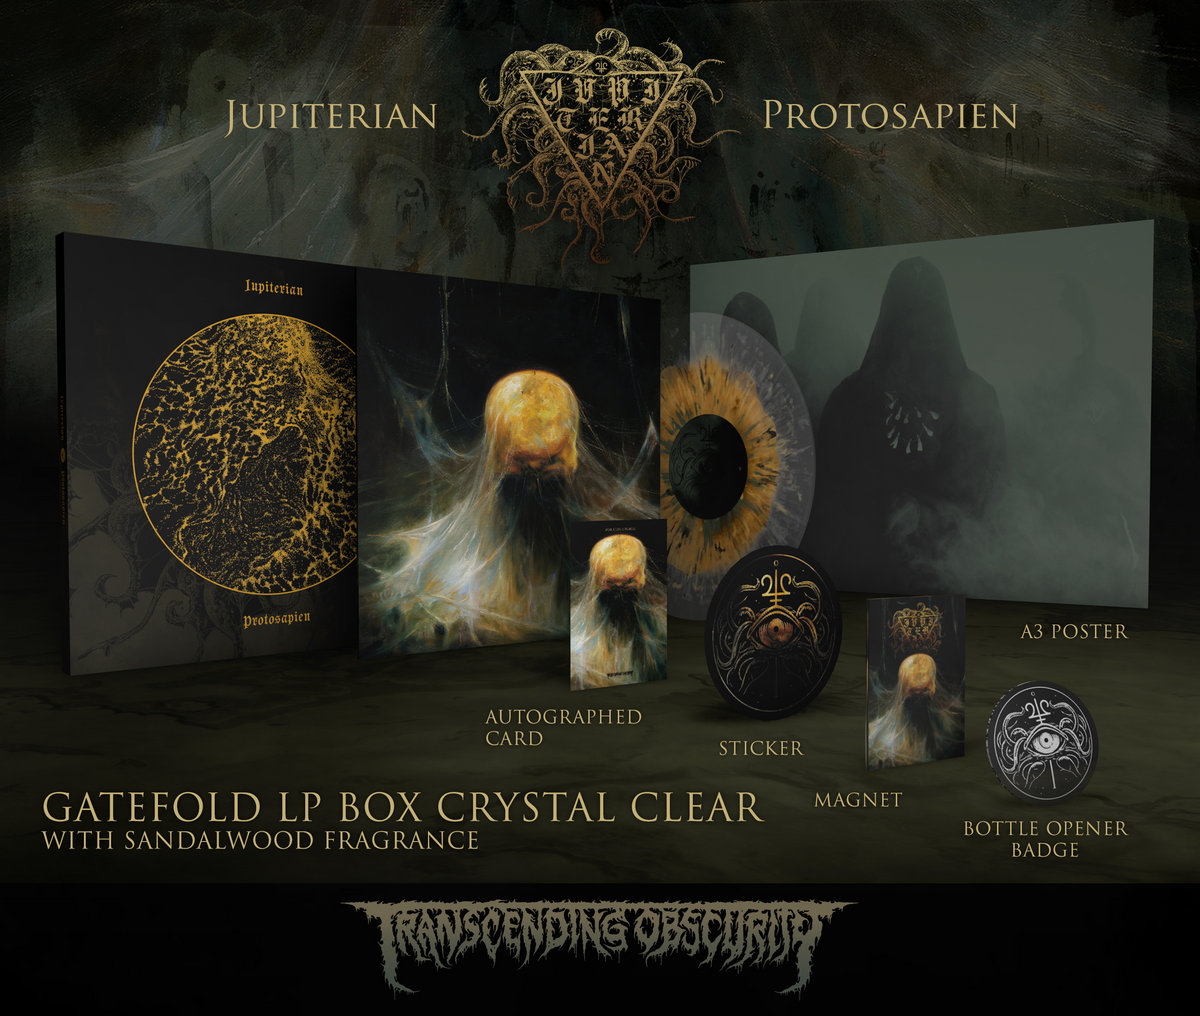 JUPITERIAN - Protosapien Autographed Gold LP Box Set (Limited to 25) Crystal LP Variant